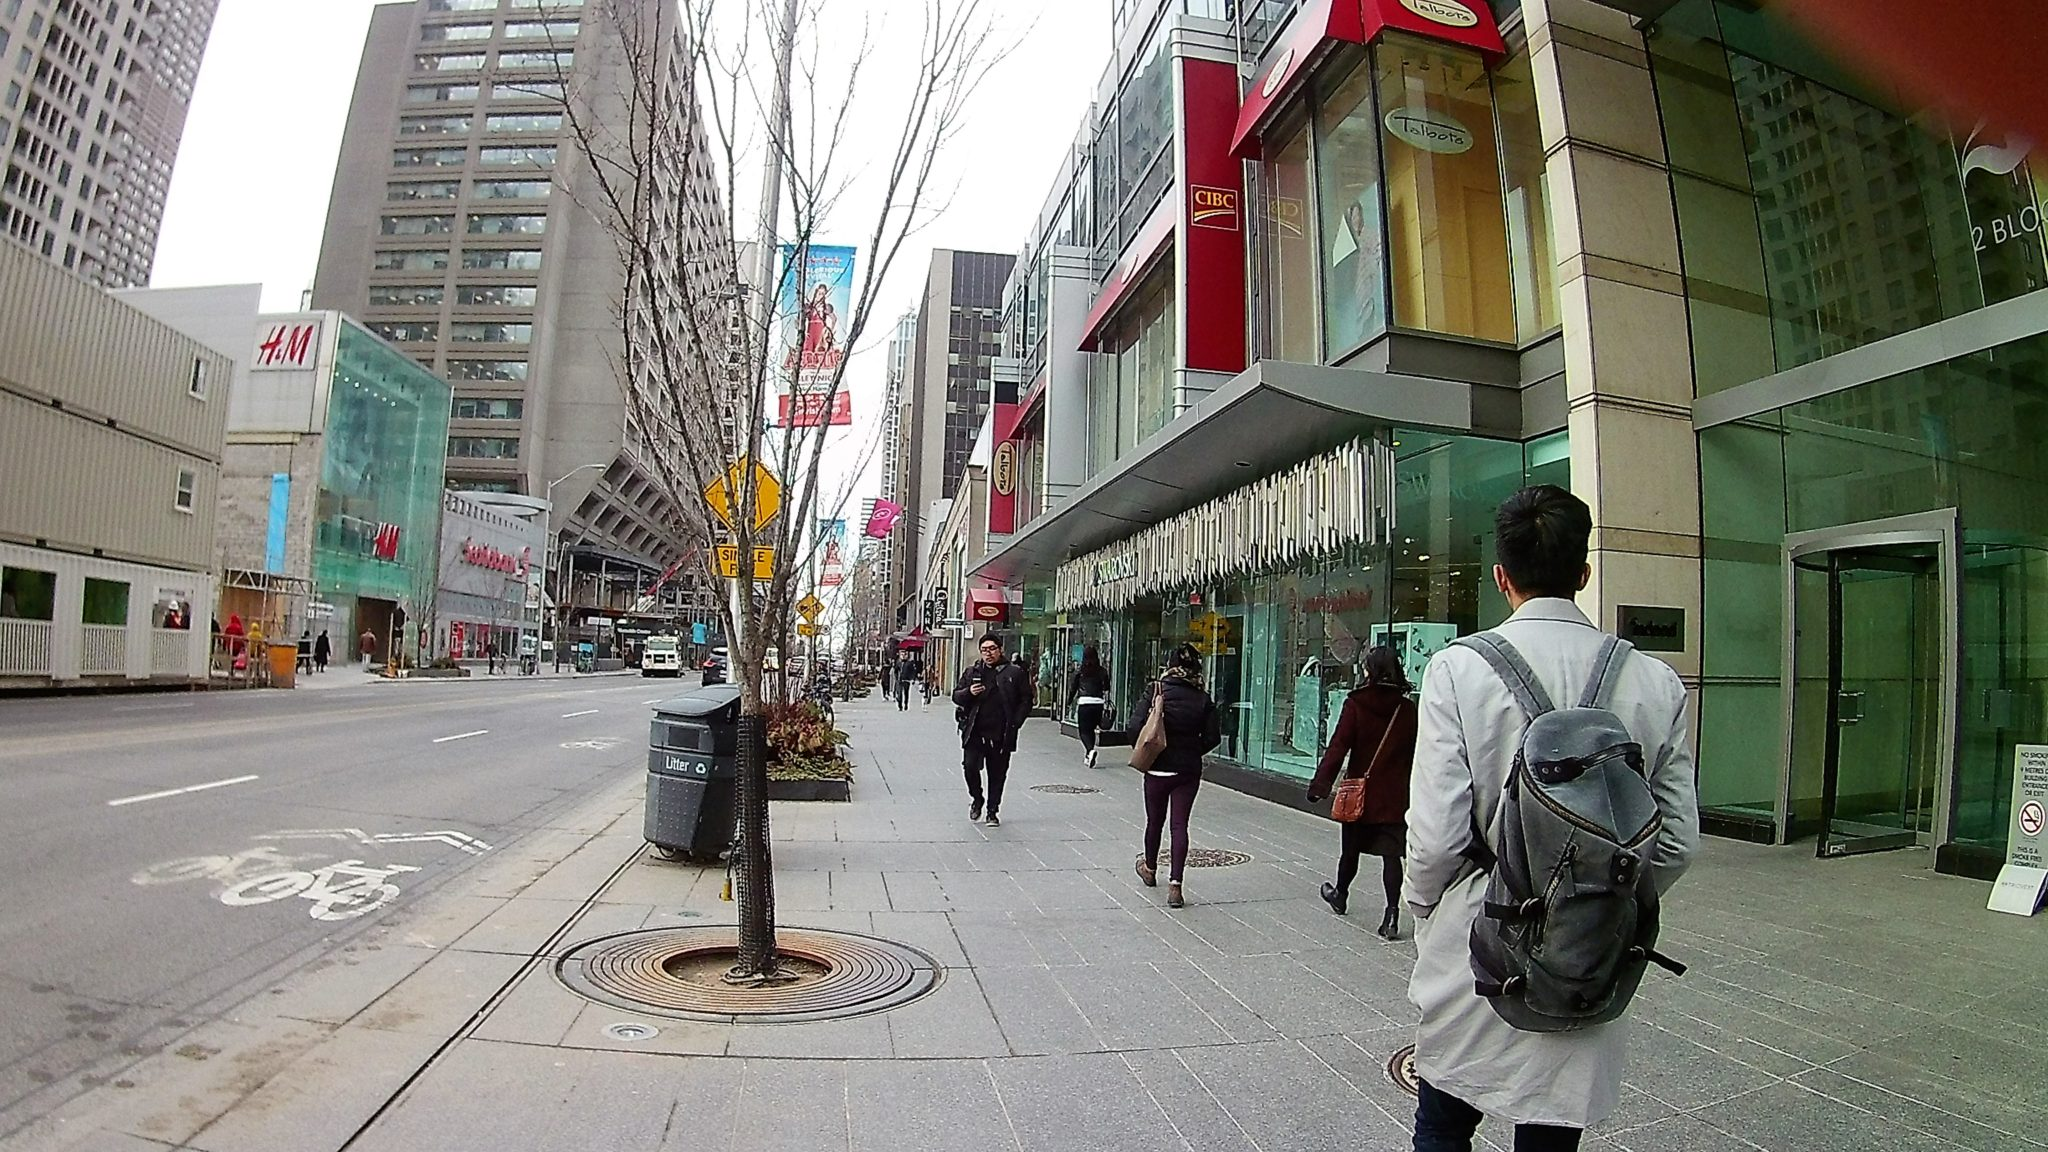 Photo of Bloor street showing people, banks, shops, and buildings.